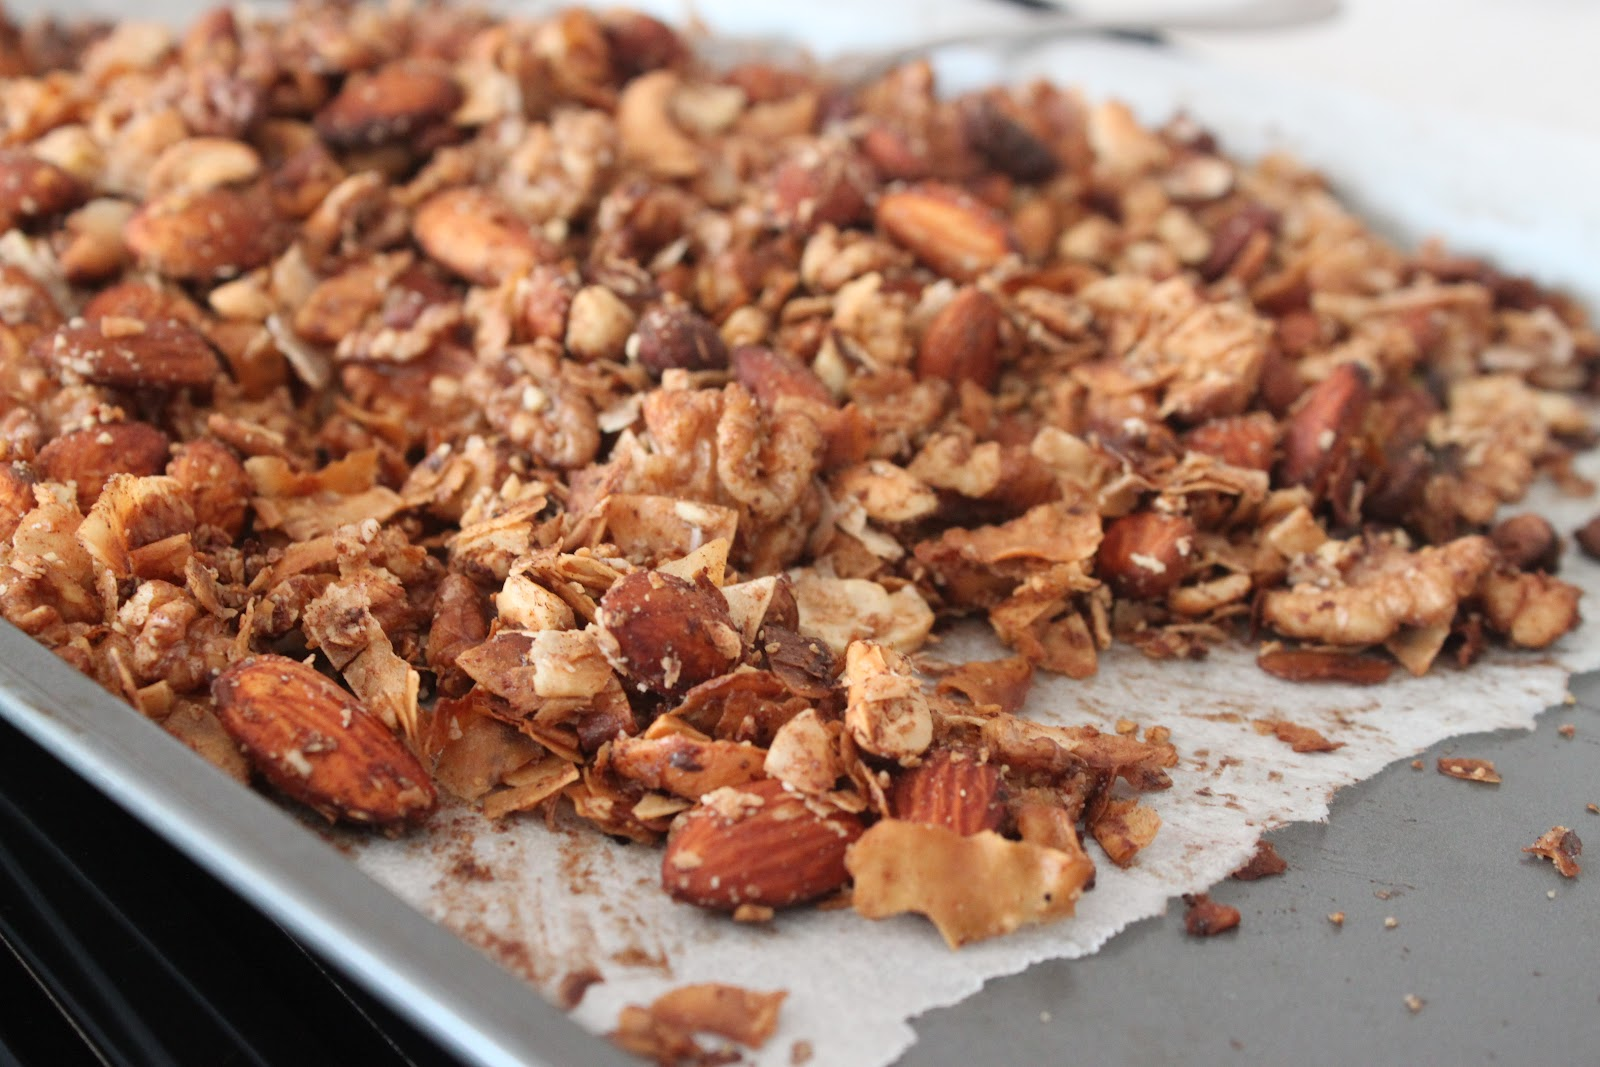 coconut almond walnut granola 1 cup of coconut flakes or